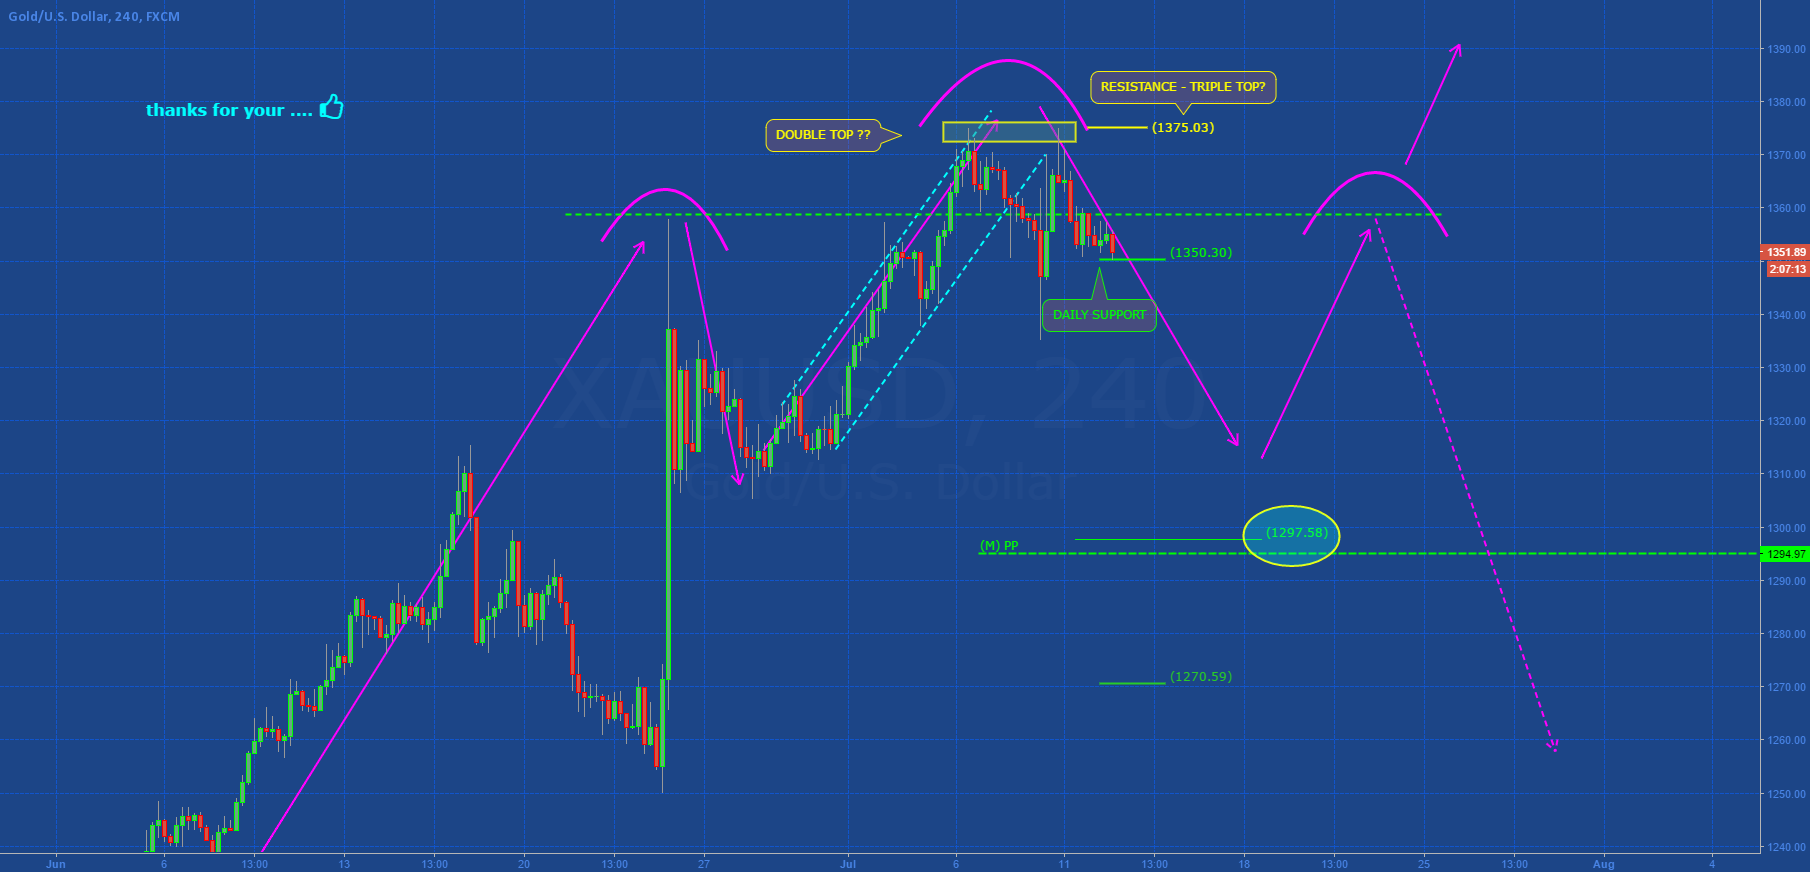 GOLD: DOUBLE TOP?